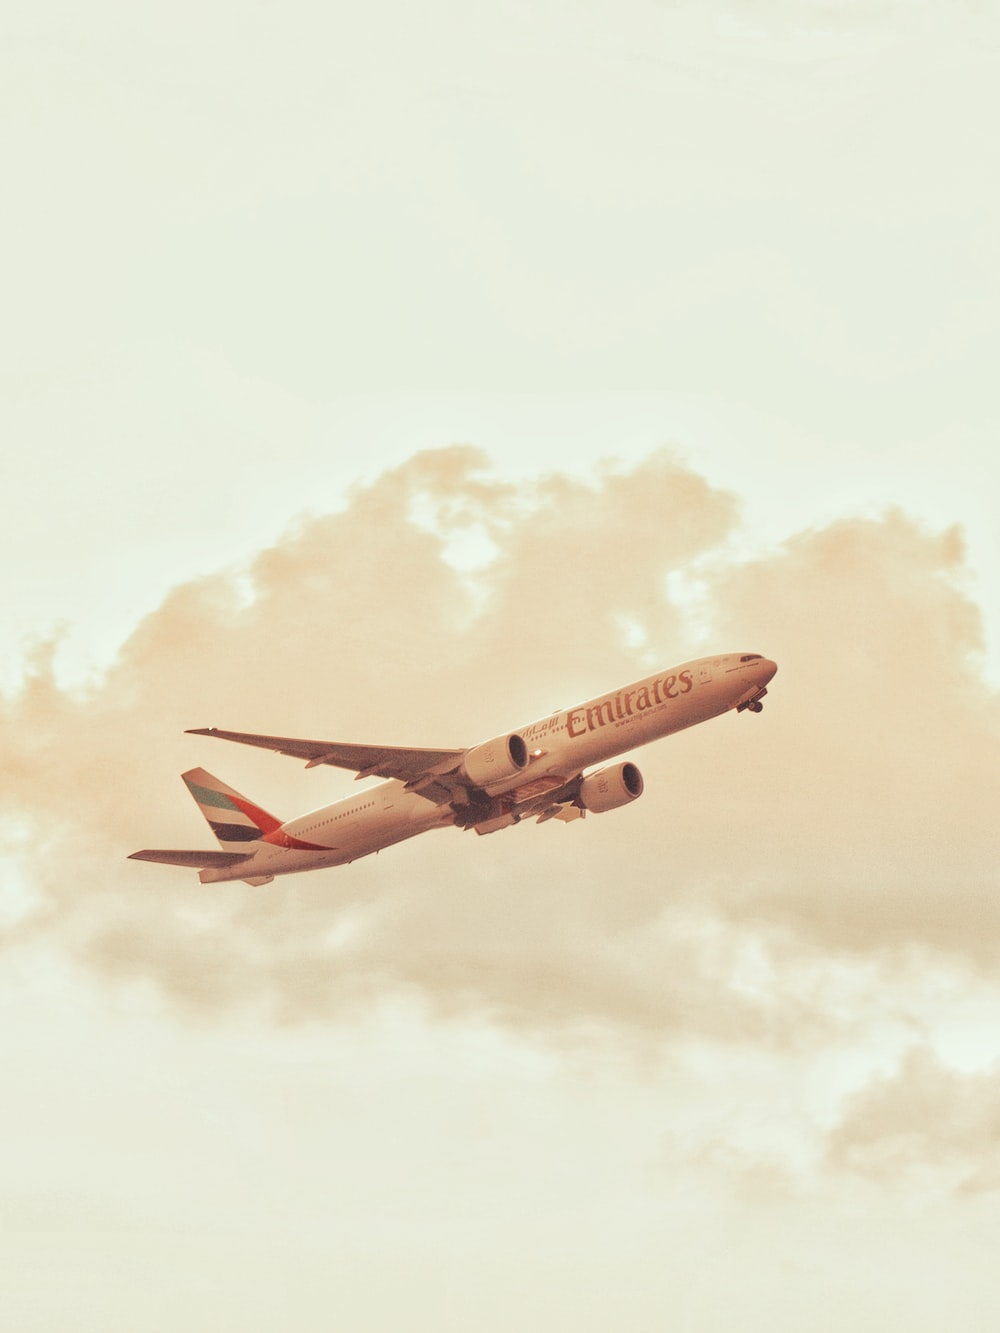 red and white passenger plane flying in the sky during daytime